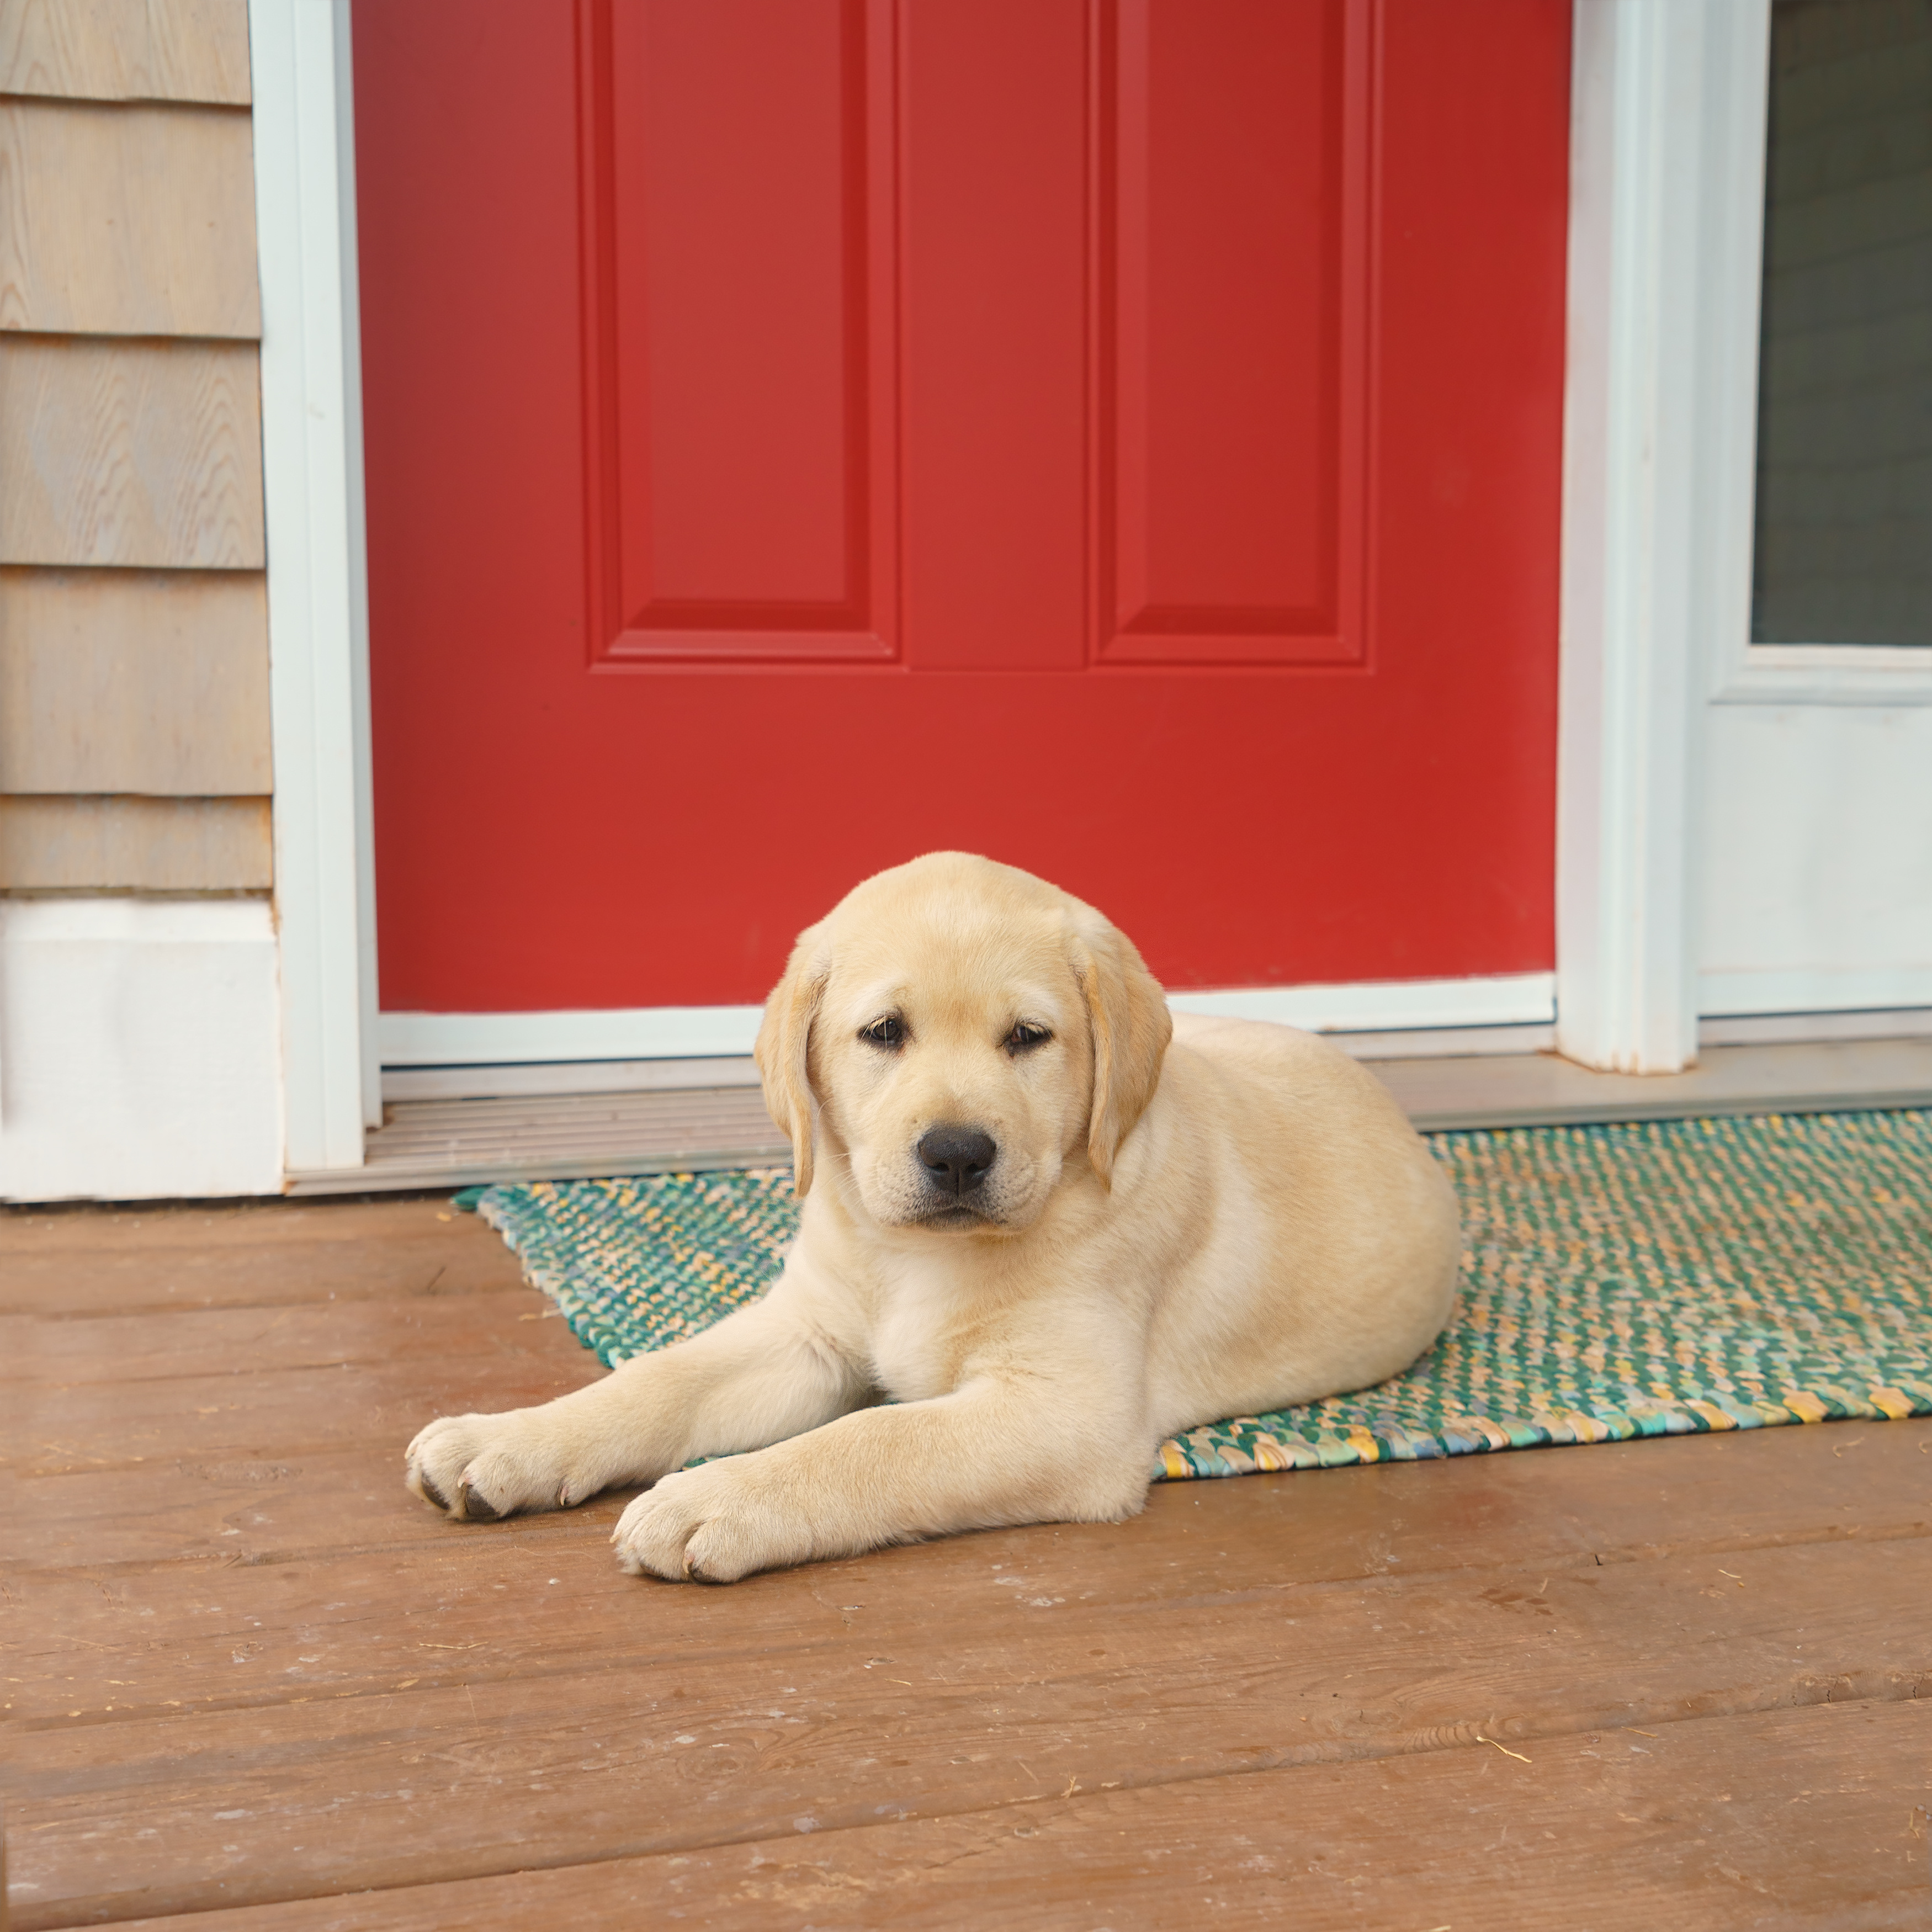 A yellow Labrador Retriever puppy lays on a multicolored green and yellow mat outside of a red front door on a wooden front porch.